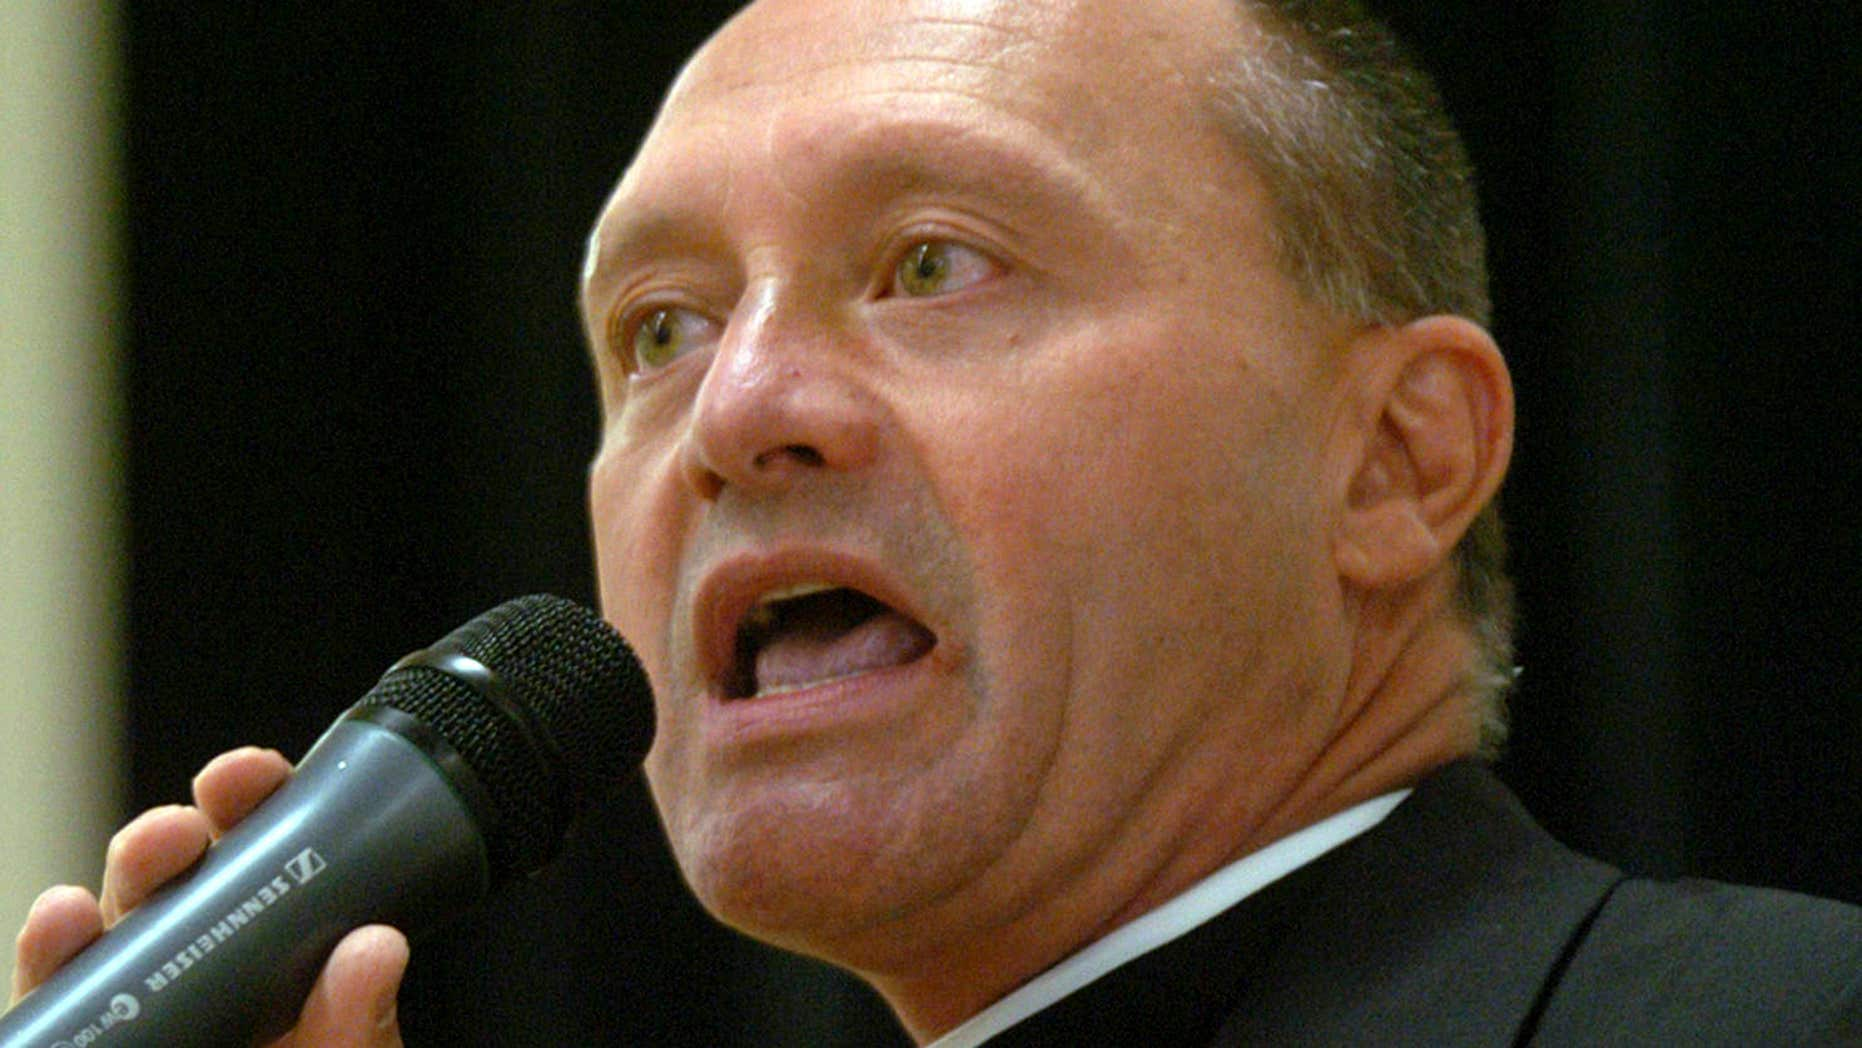 May 4, 2006: Monsignor Kevin Wallin speaks at the Catholic Center, headquarters of the Diocese of Bridgeport, in Bridgeport, Conn.